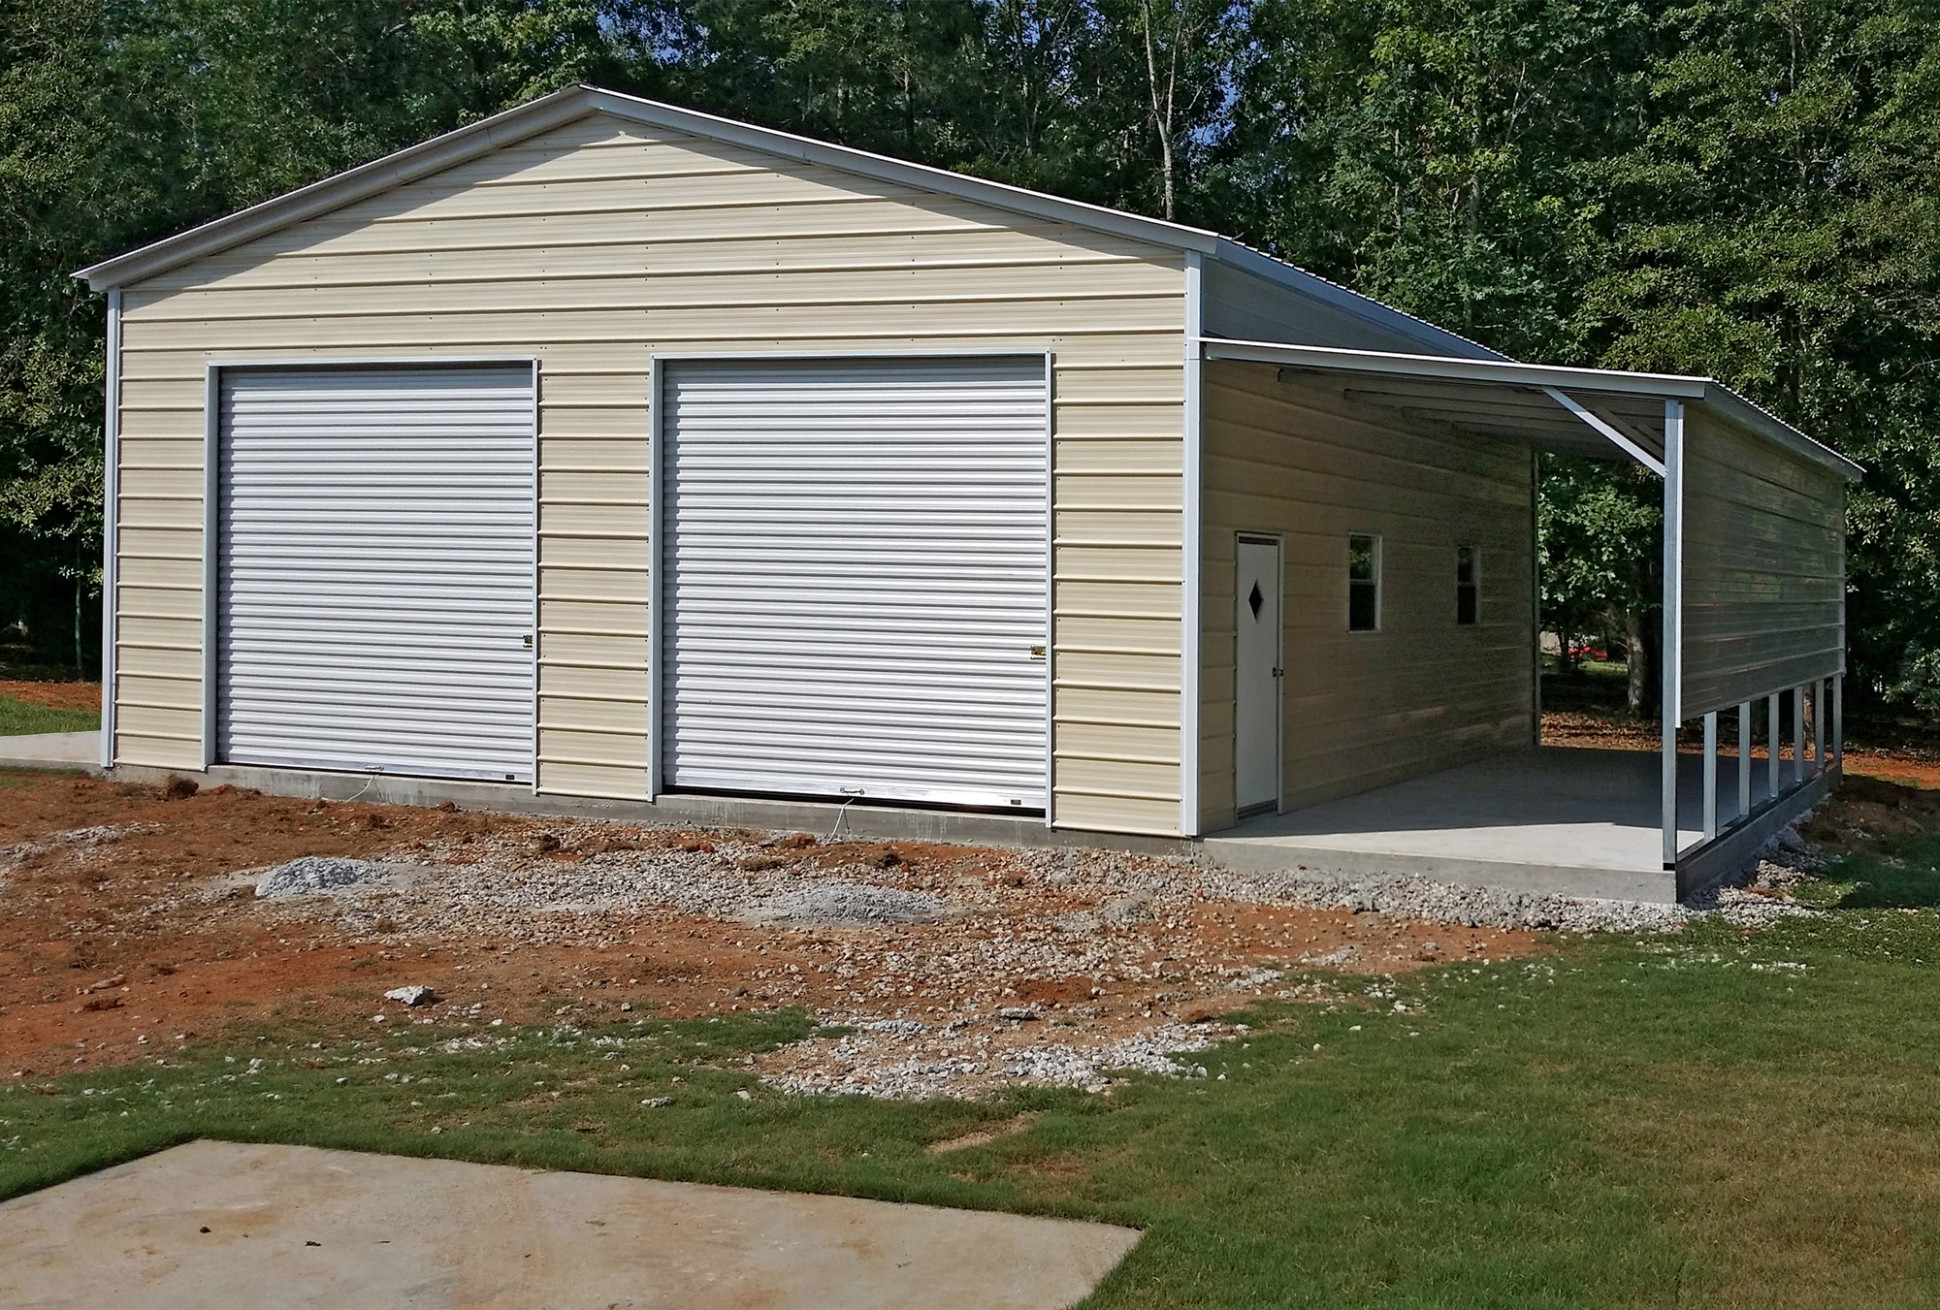 Metal Garages & Carports Protect Your Car From Sun, Rain ..